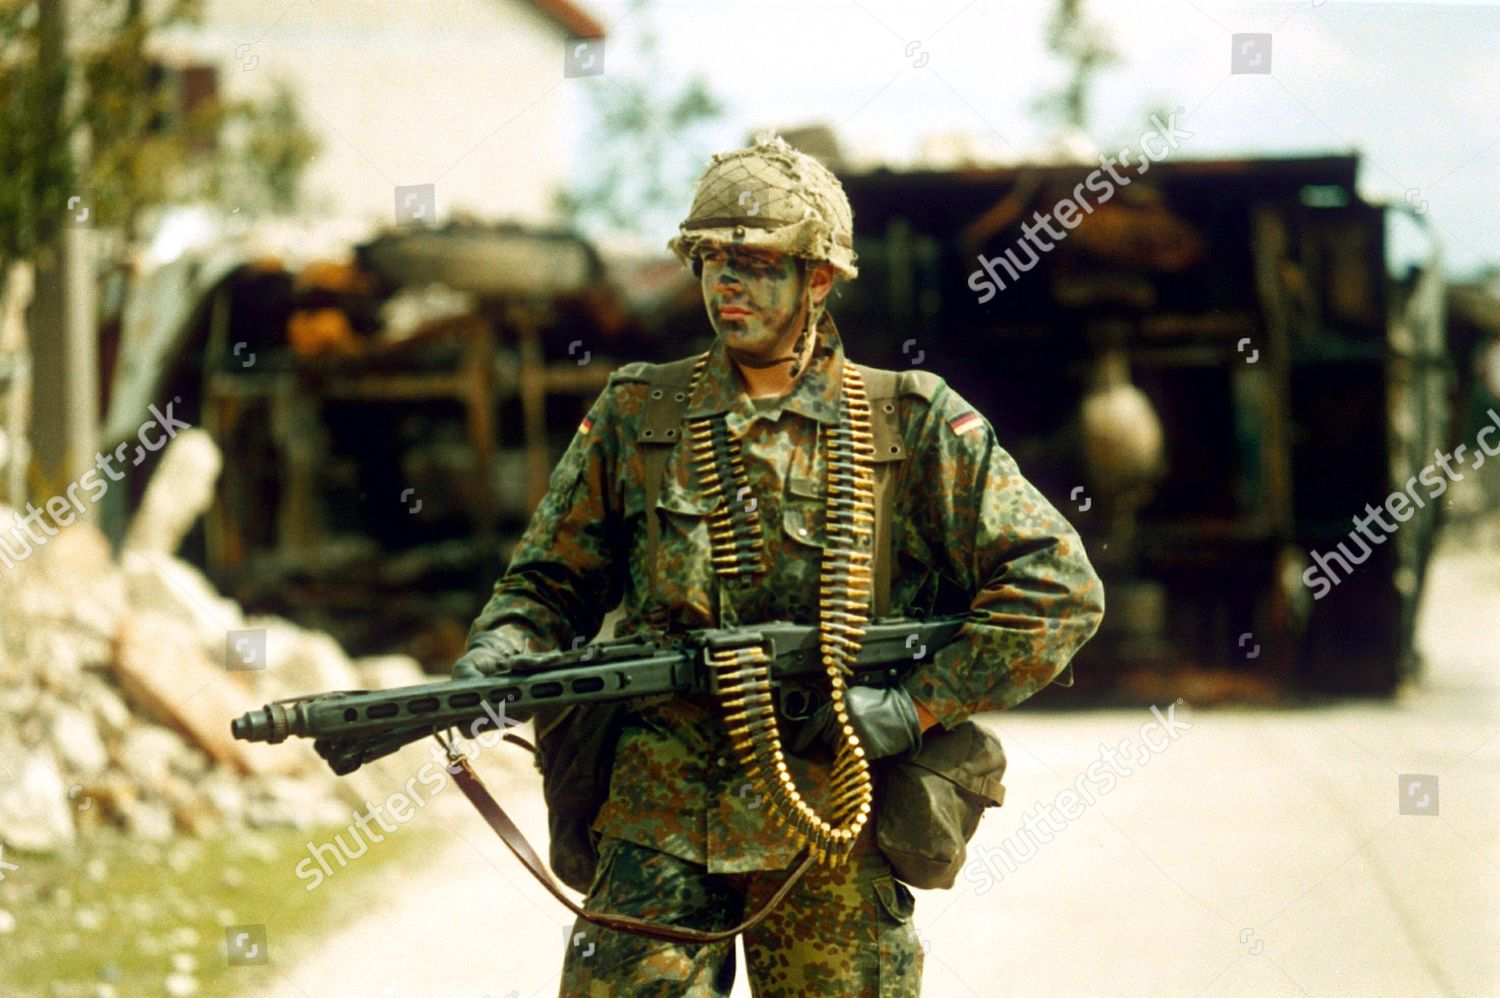 german-and-british-soldiers-on-joint-exercise-on-salisbury-plain-wiltshire-britain-1992-shutterstock-editorial-204672b.jpg